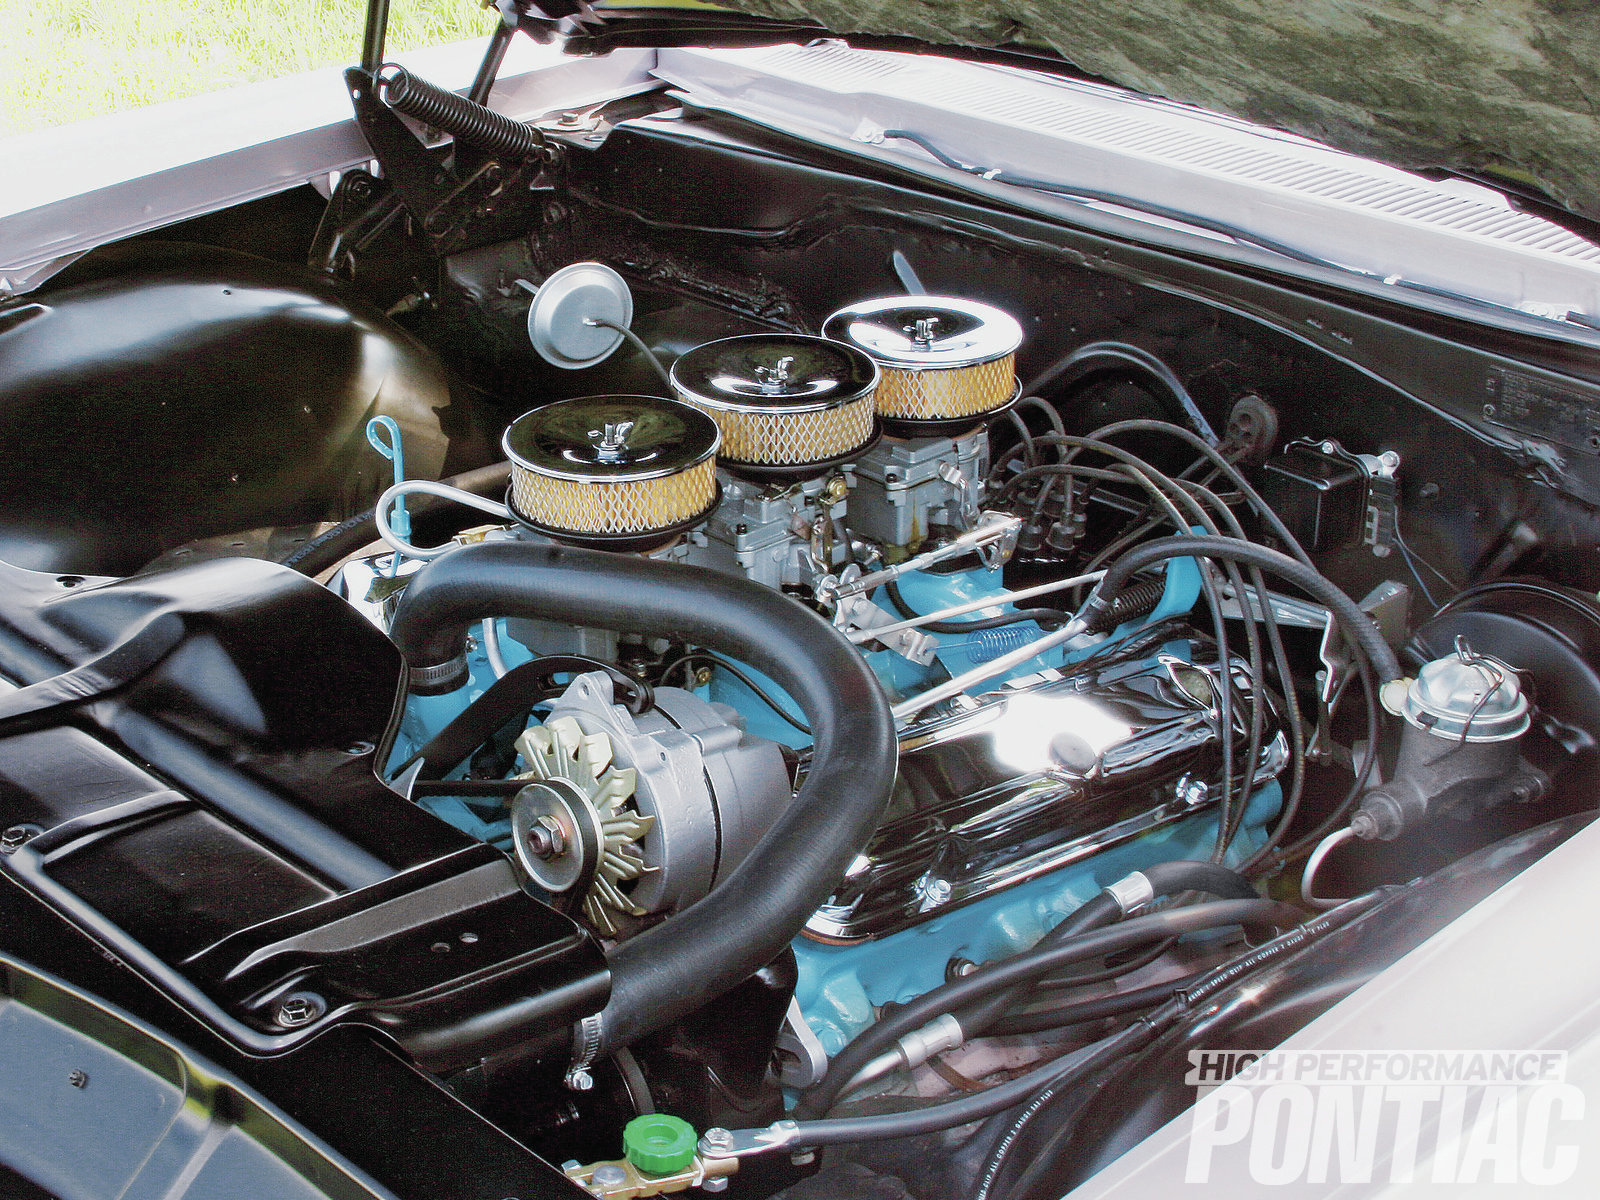 The original 389 was treated to new soft plugs and gaskets before it was detailed and fitted with a correctly date-coded Tri-Power system, featuring an ultra-rare NOS center carb. The chrome valve covers were also added for a splash of brightwork under the hood.